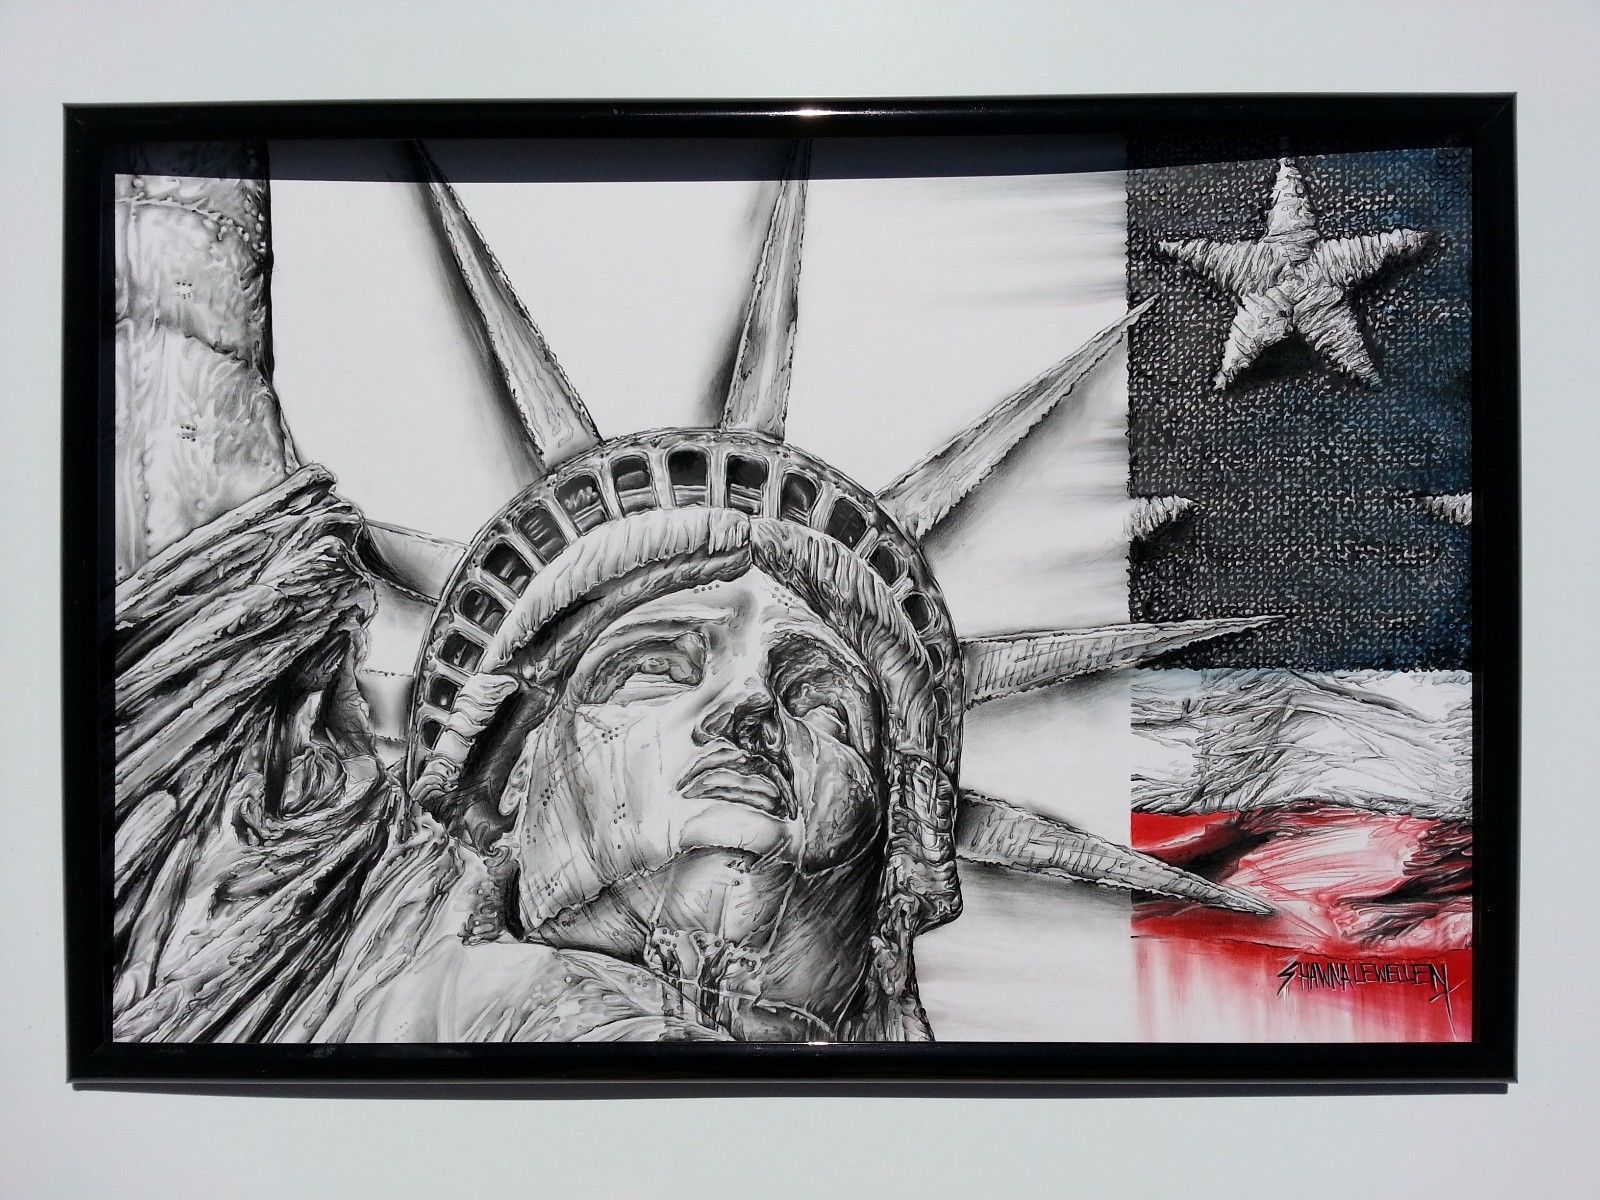 In God We Trust Fine Art Poster featuring Statue of Liberty